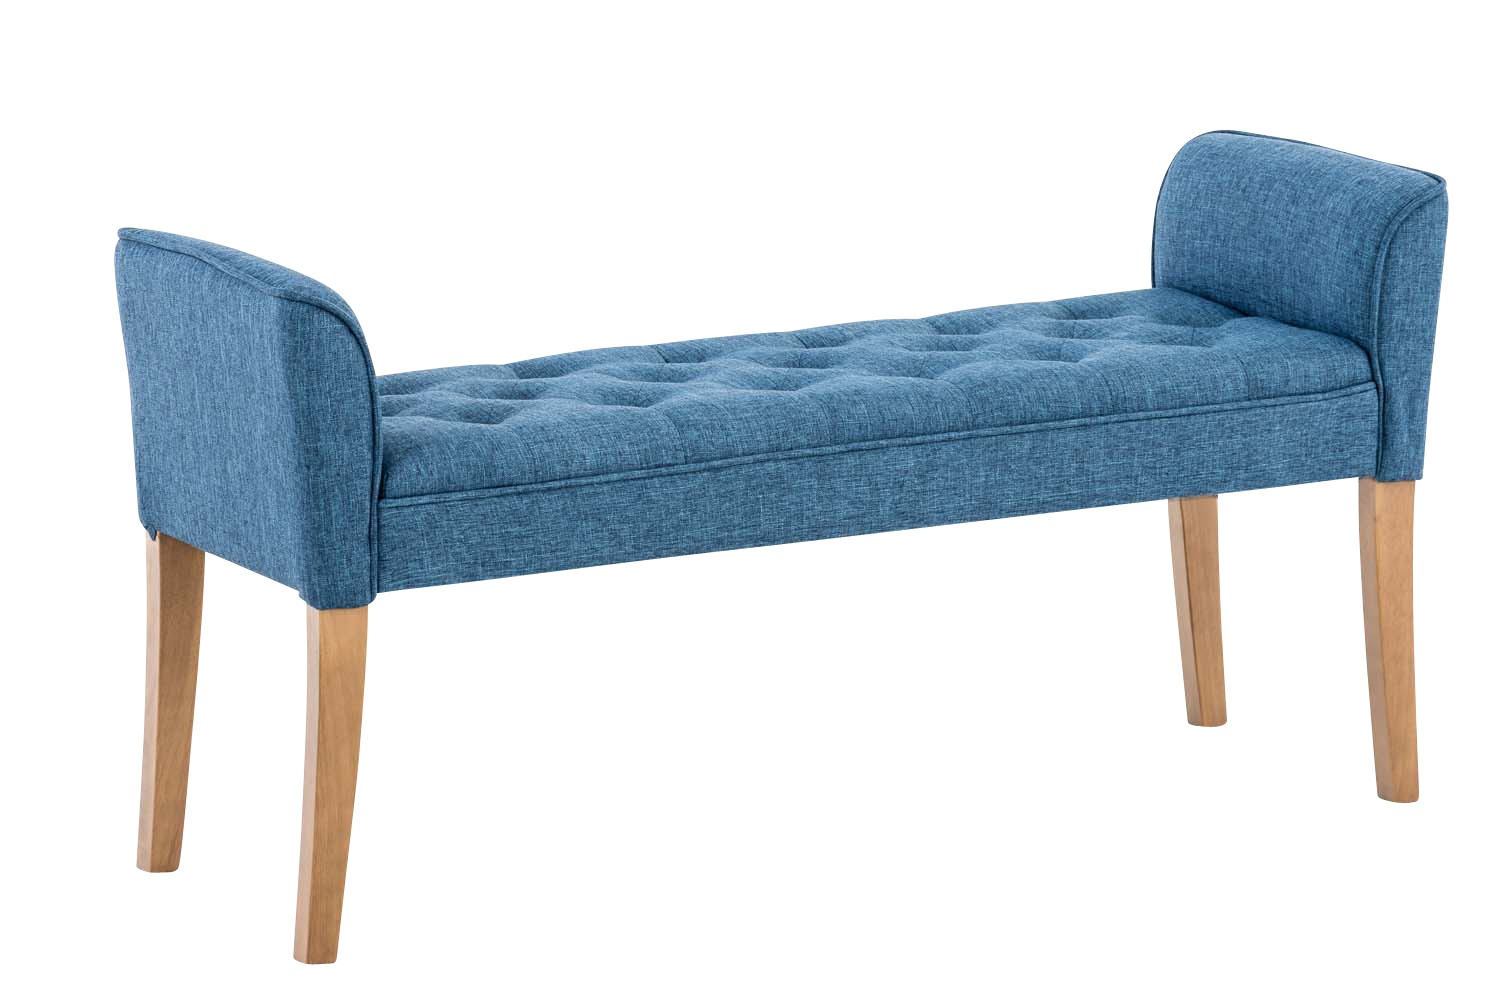 Chaise longue Cleopatra, stof